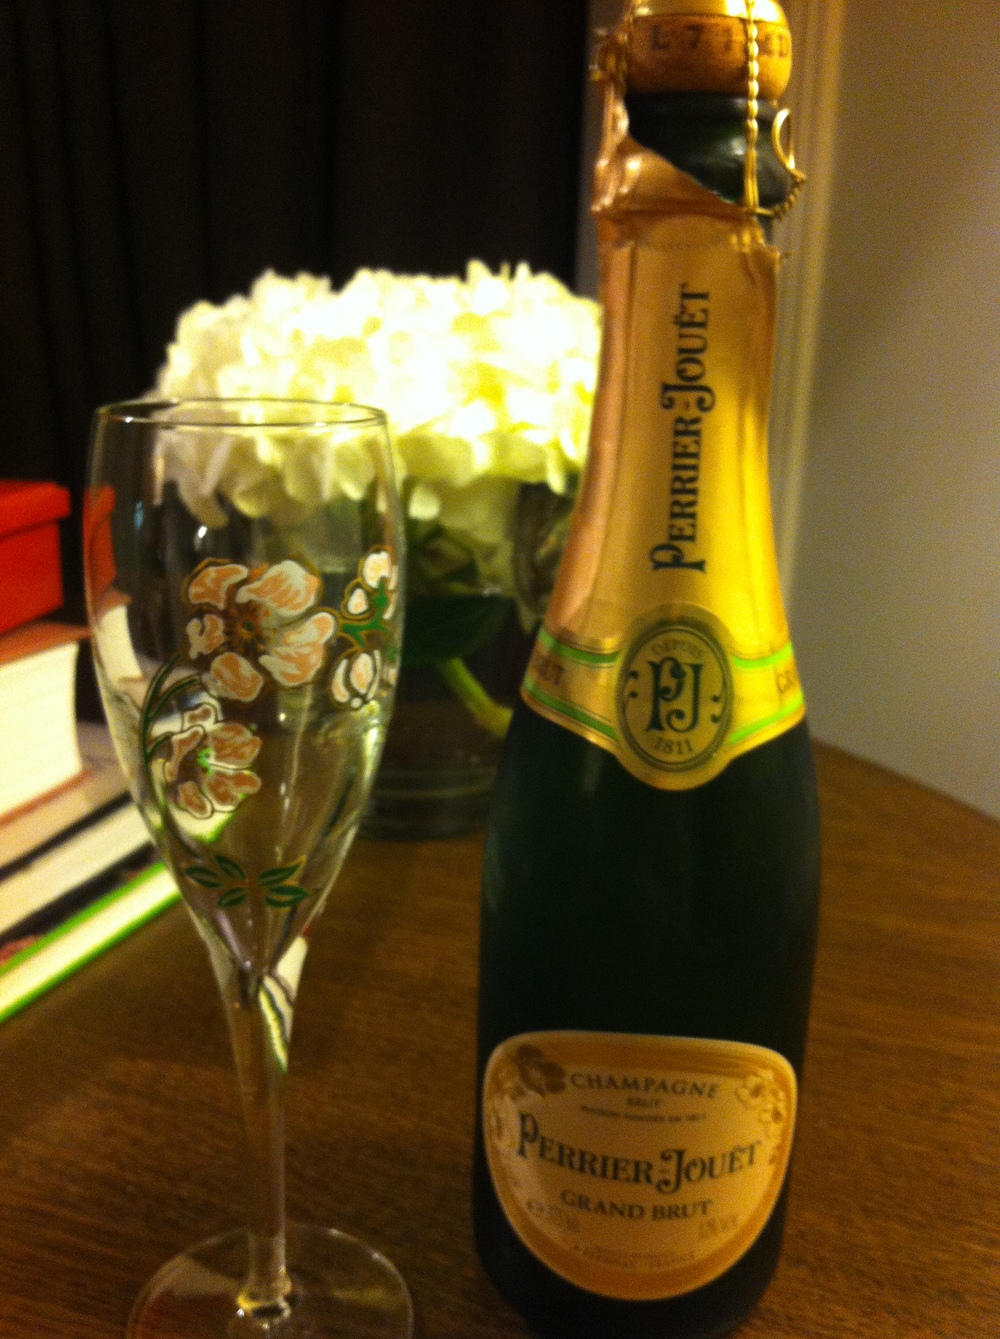 After a good workout in the hotel's fitness centre and a shower in the luxury bathroom, into the fluffy bathrobe and opened the Perrier Jouet Grand Brut from the mini bar!!